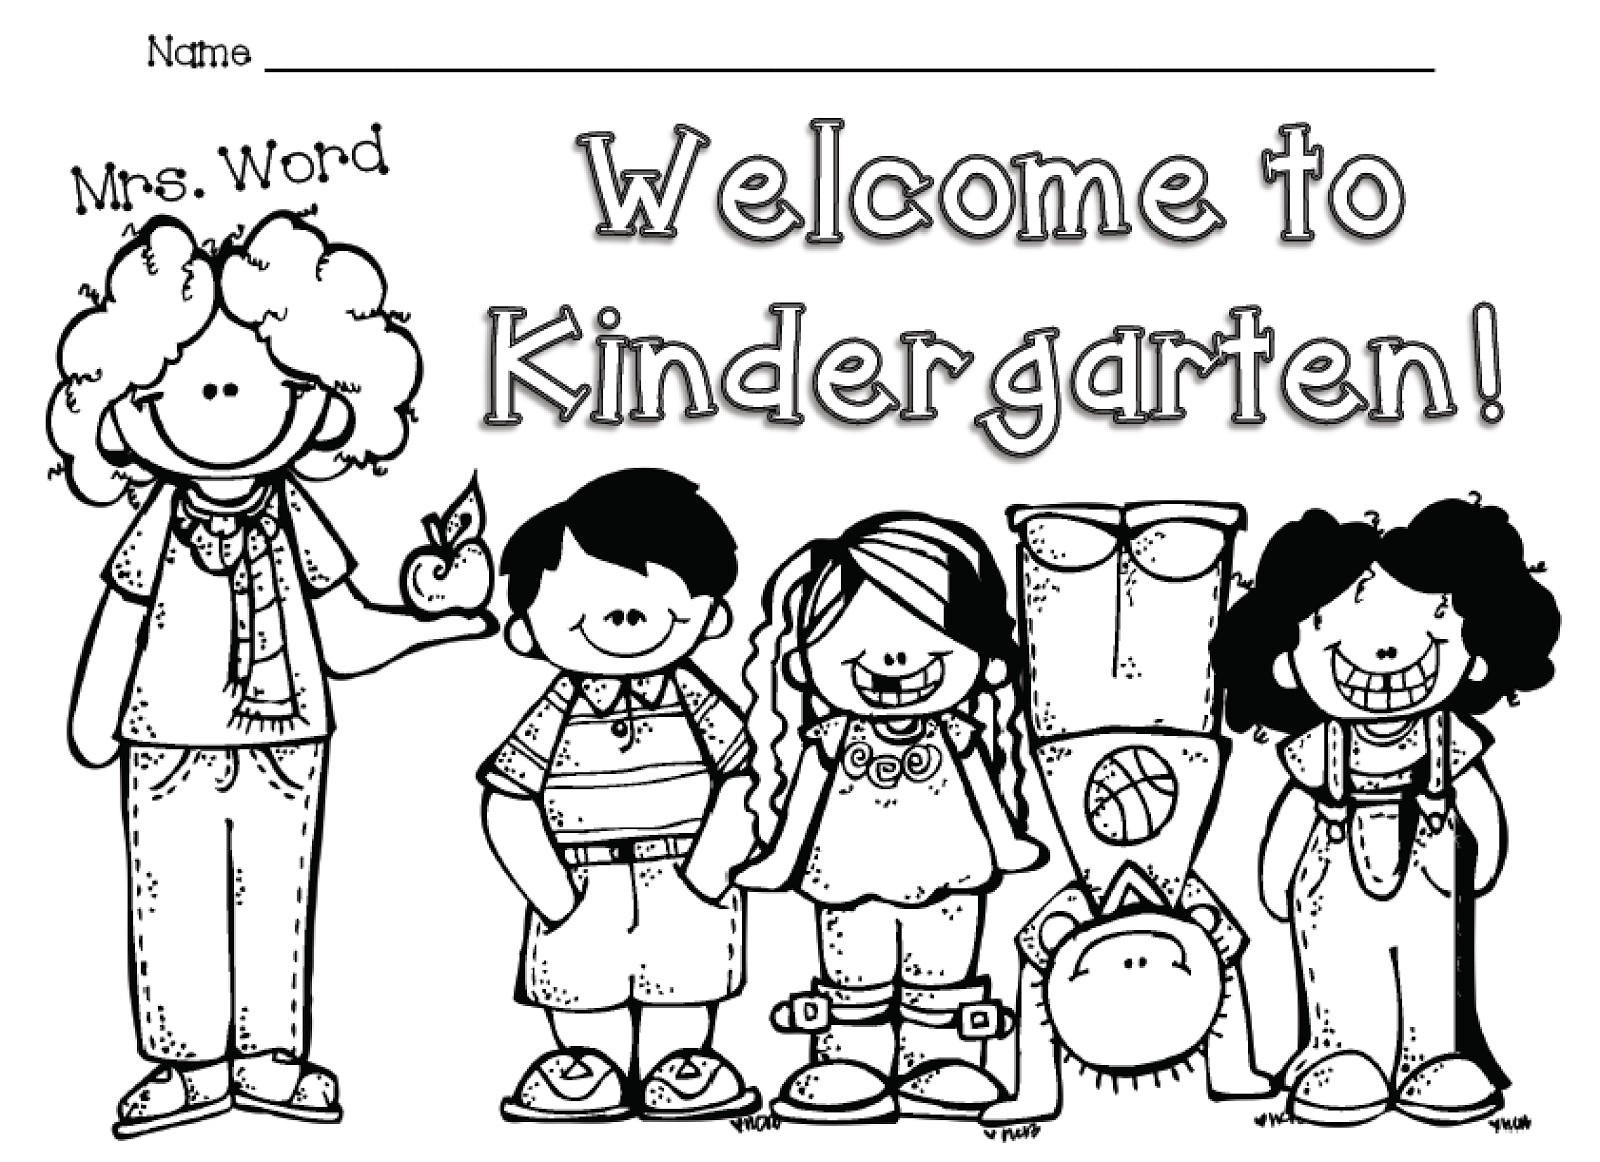 It's just an image of Mesmerizing Welcome To Preschool Coloring Page